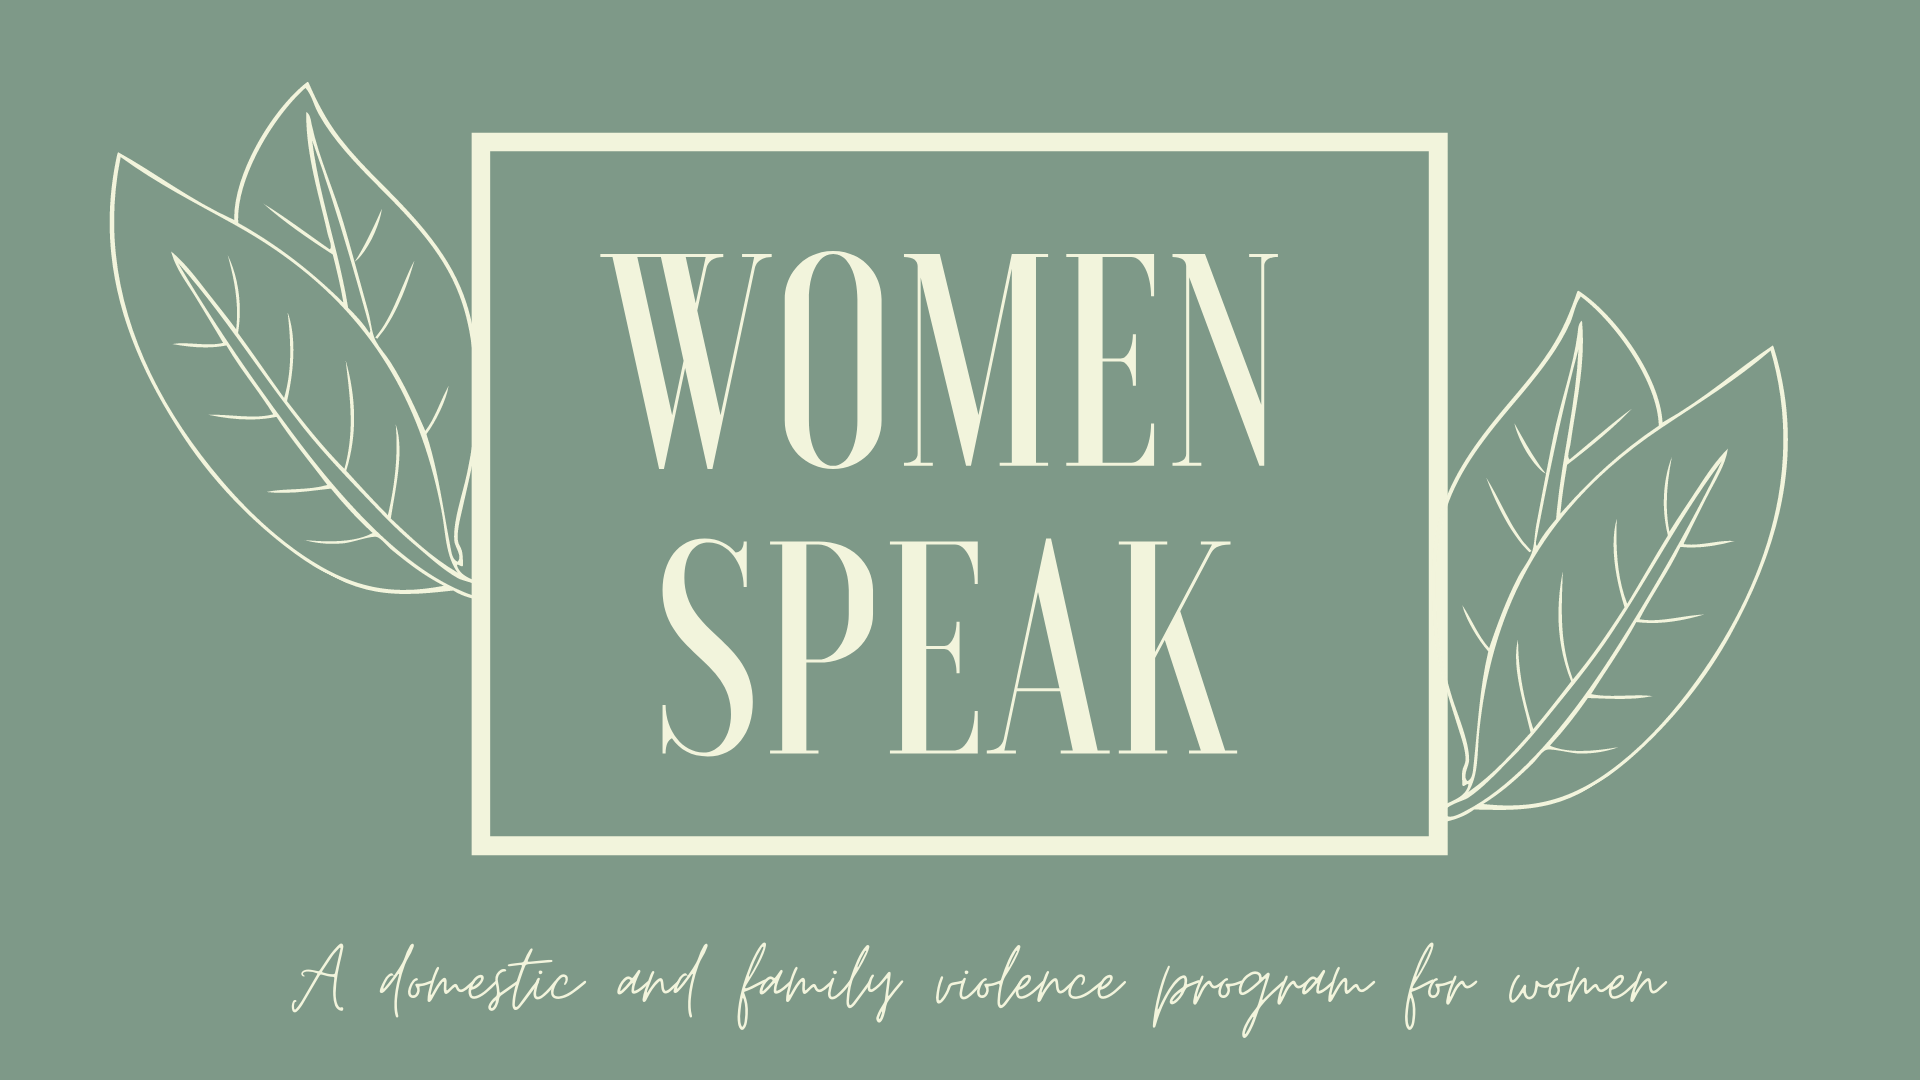 Women Speak – Domestic Violence Program For Women